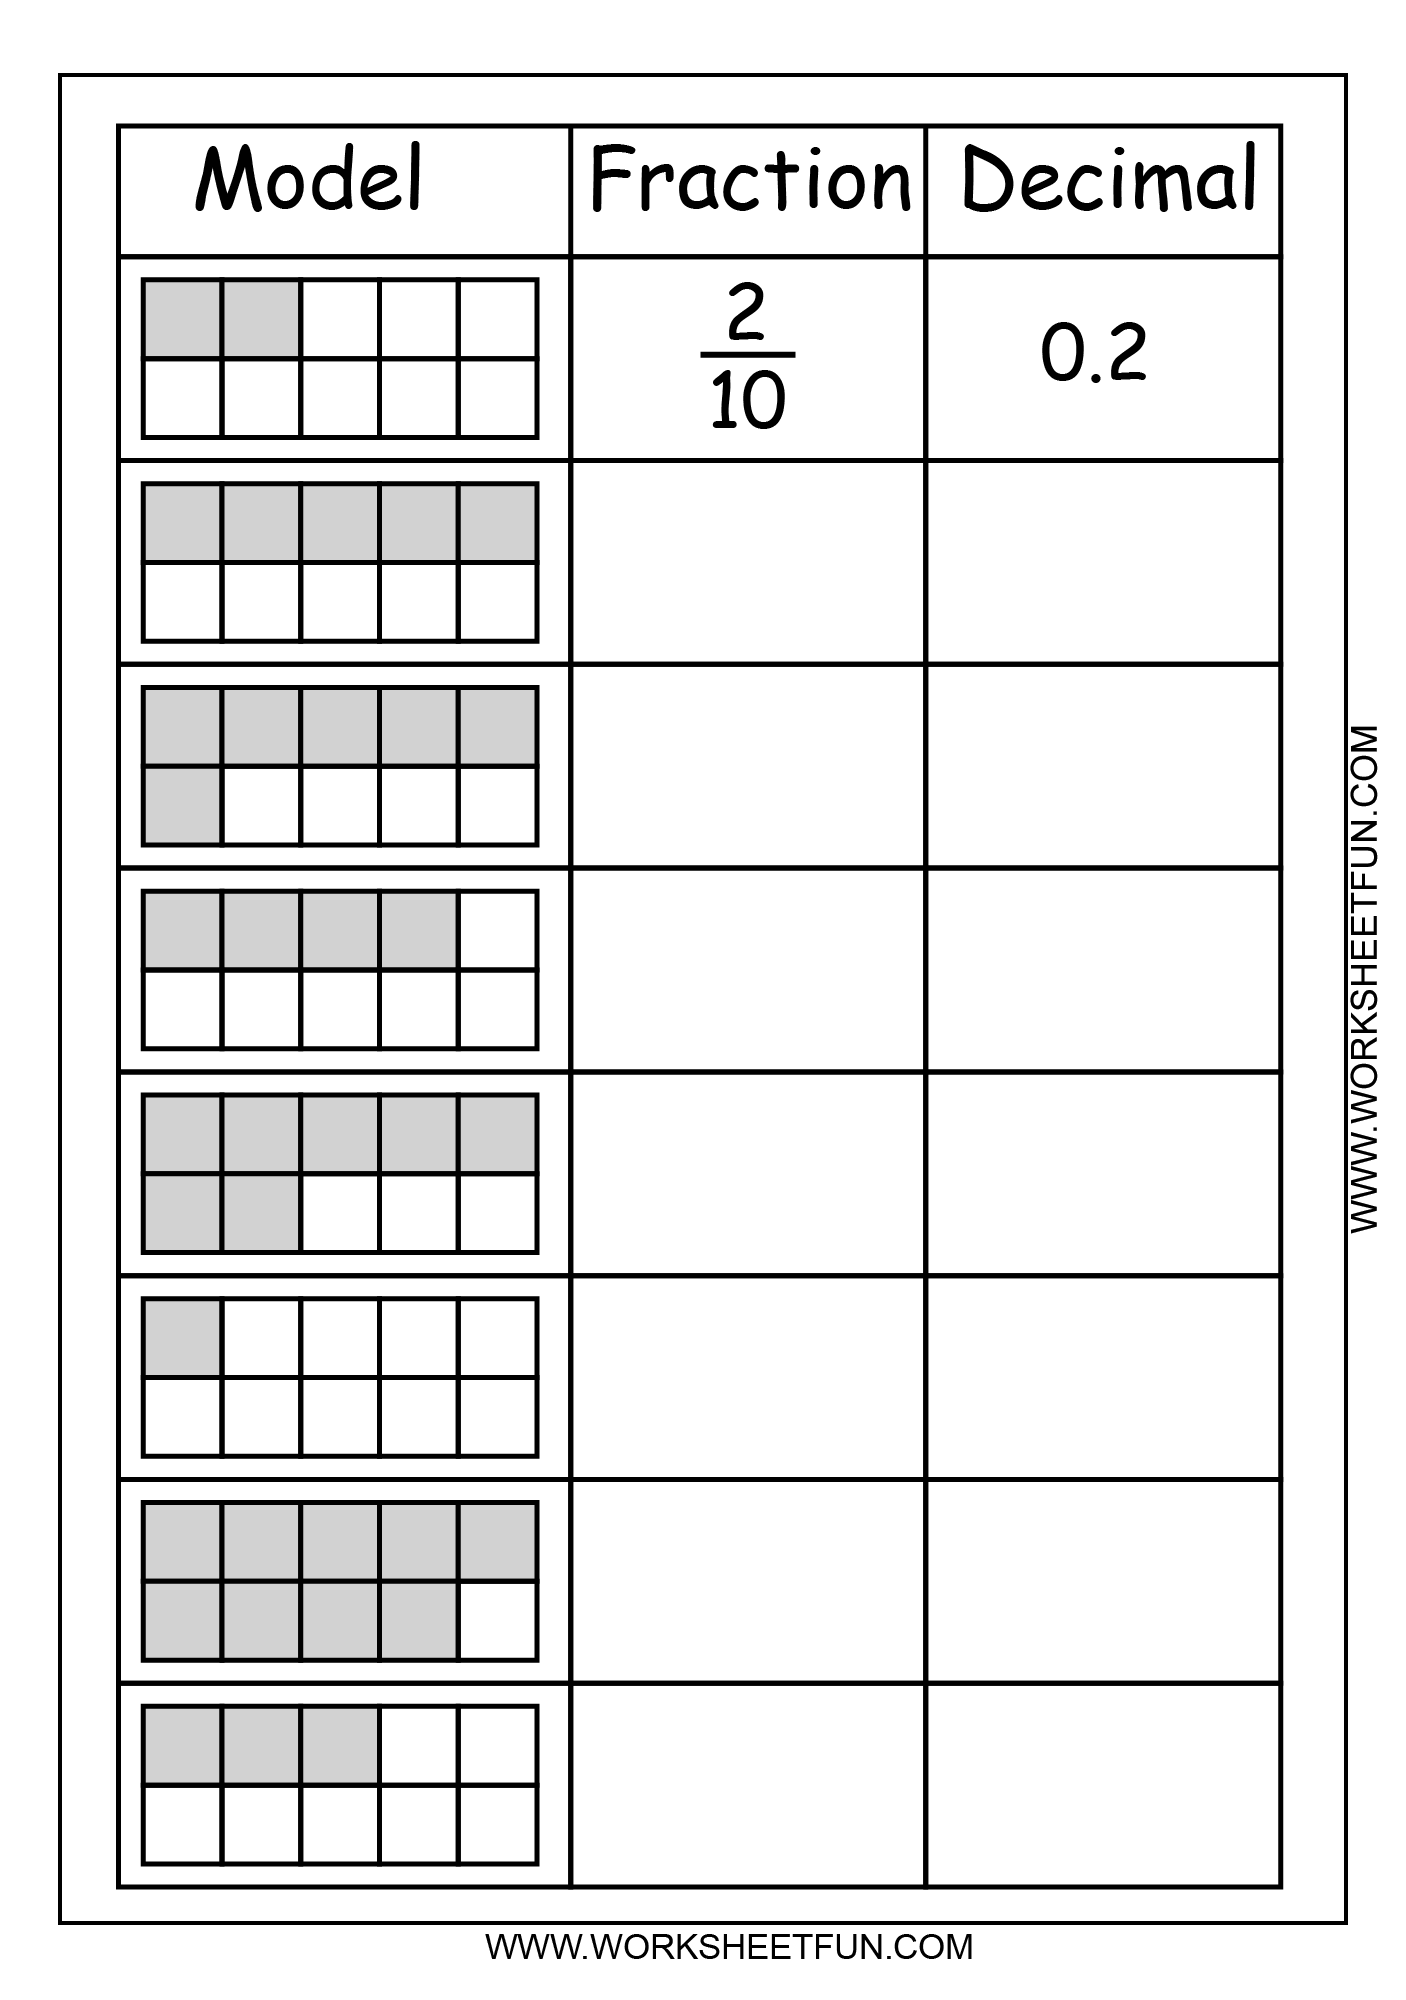 Worksheets Fraction To Decimal Worksheet model fraction decimal printable worksheets pinterest models decimal